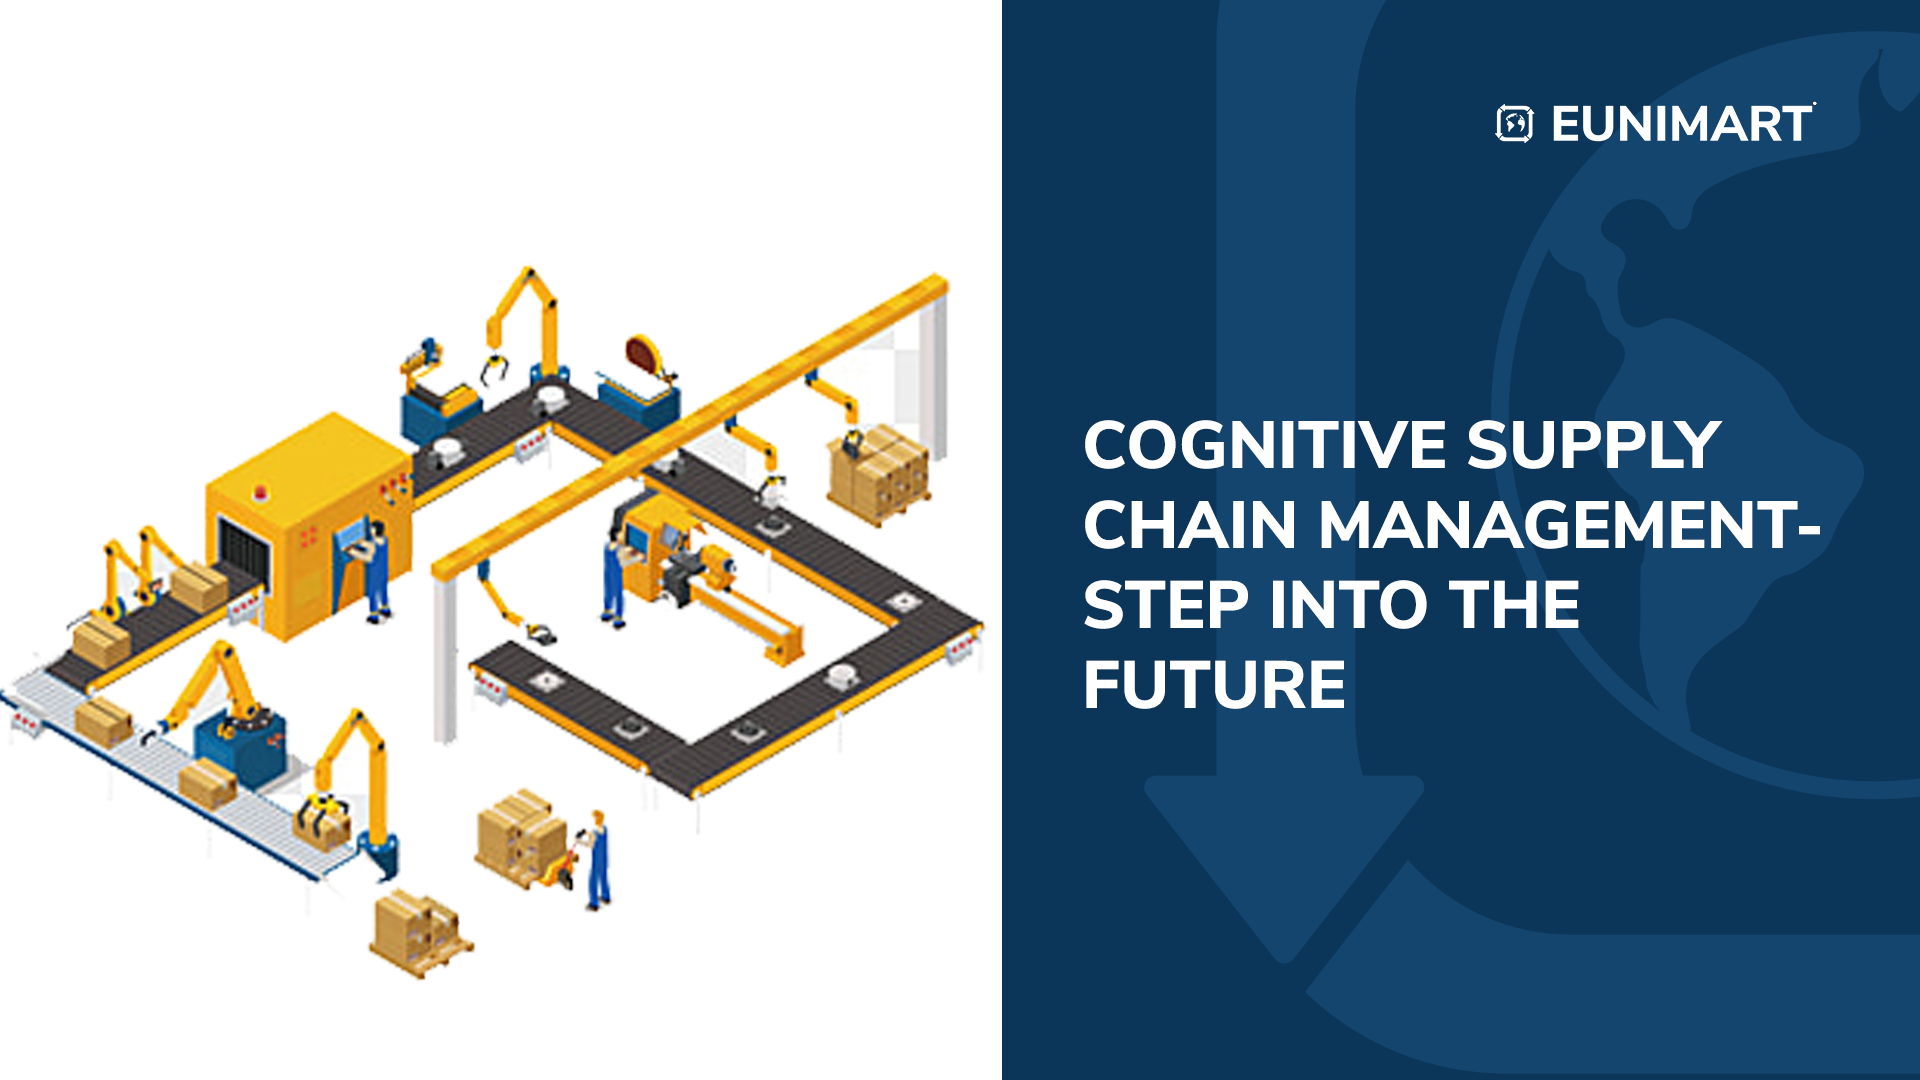 Cognitive Supply Chain Management- Step into the Future